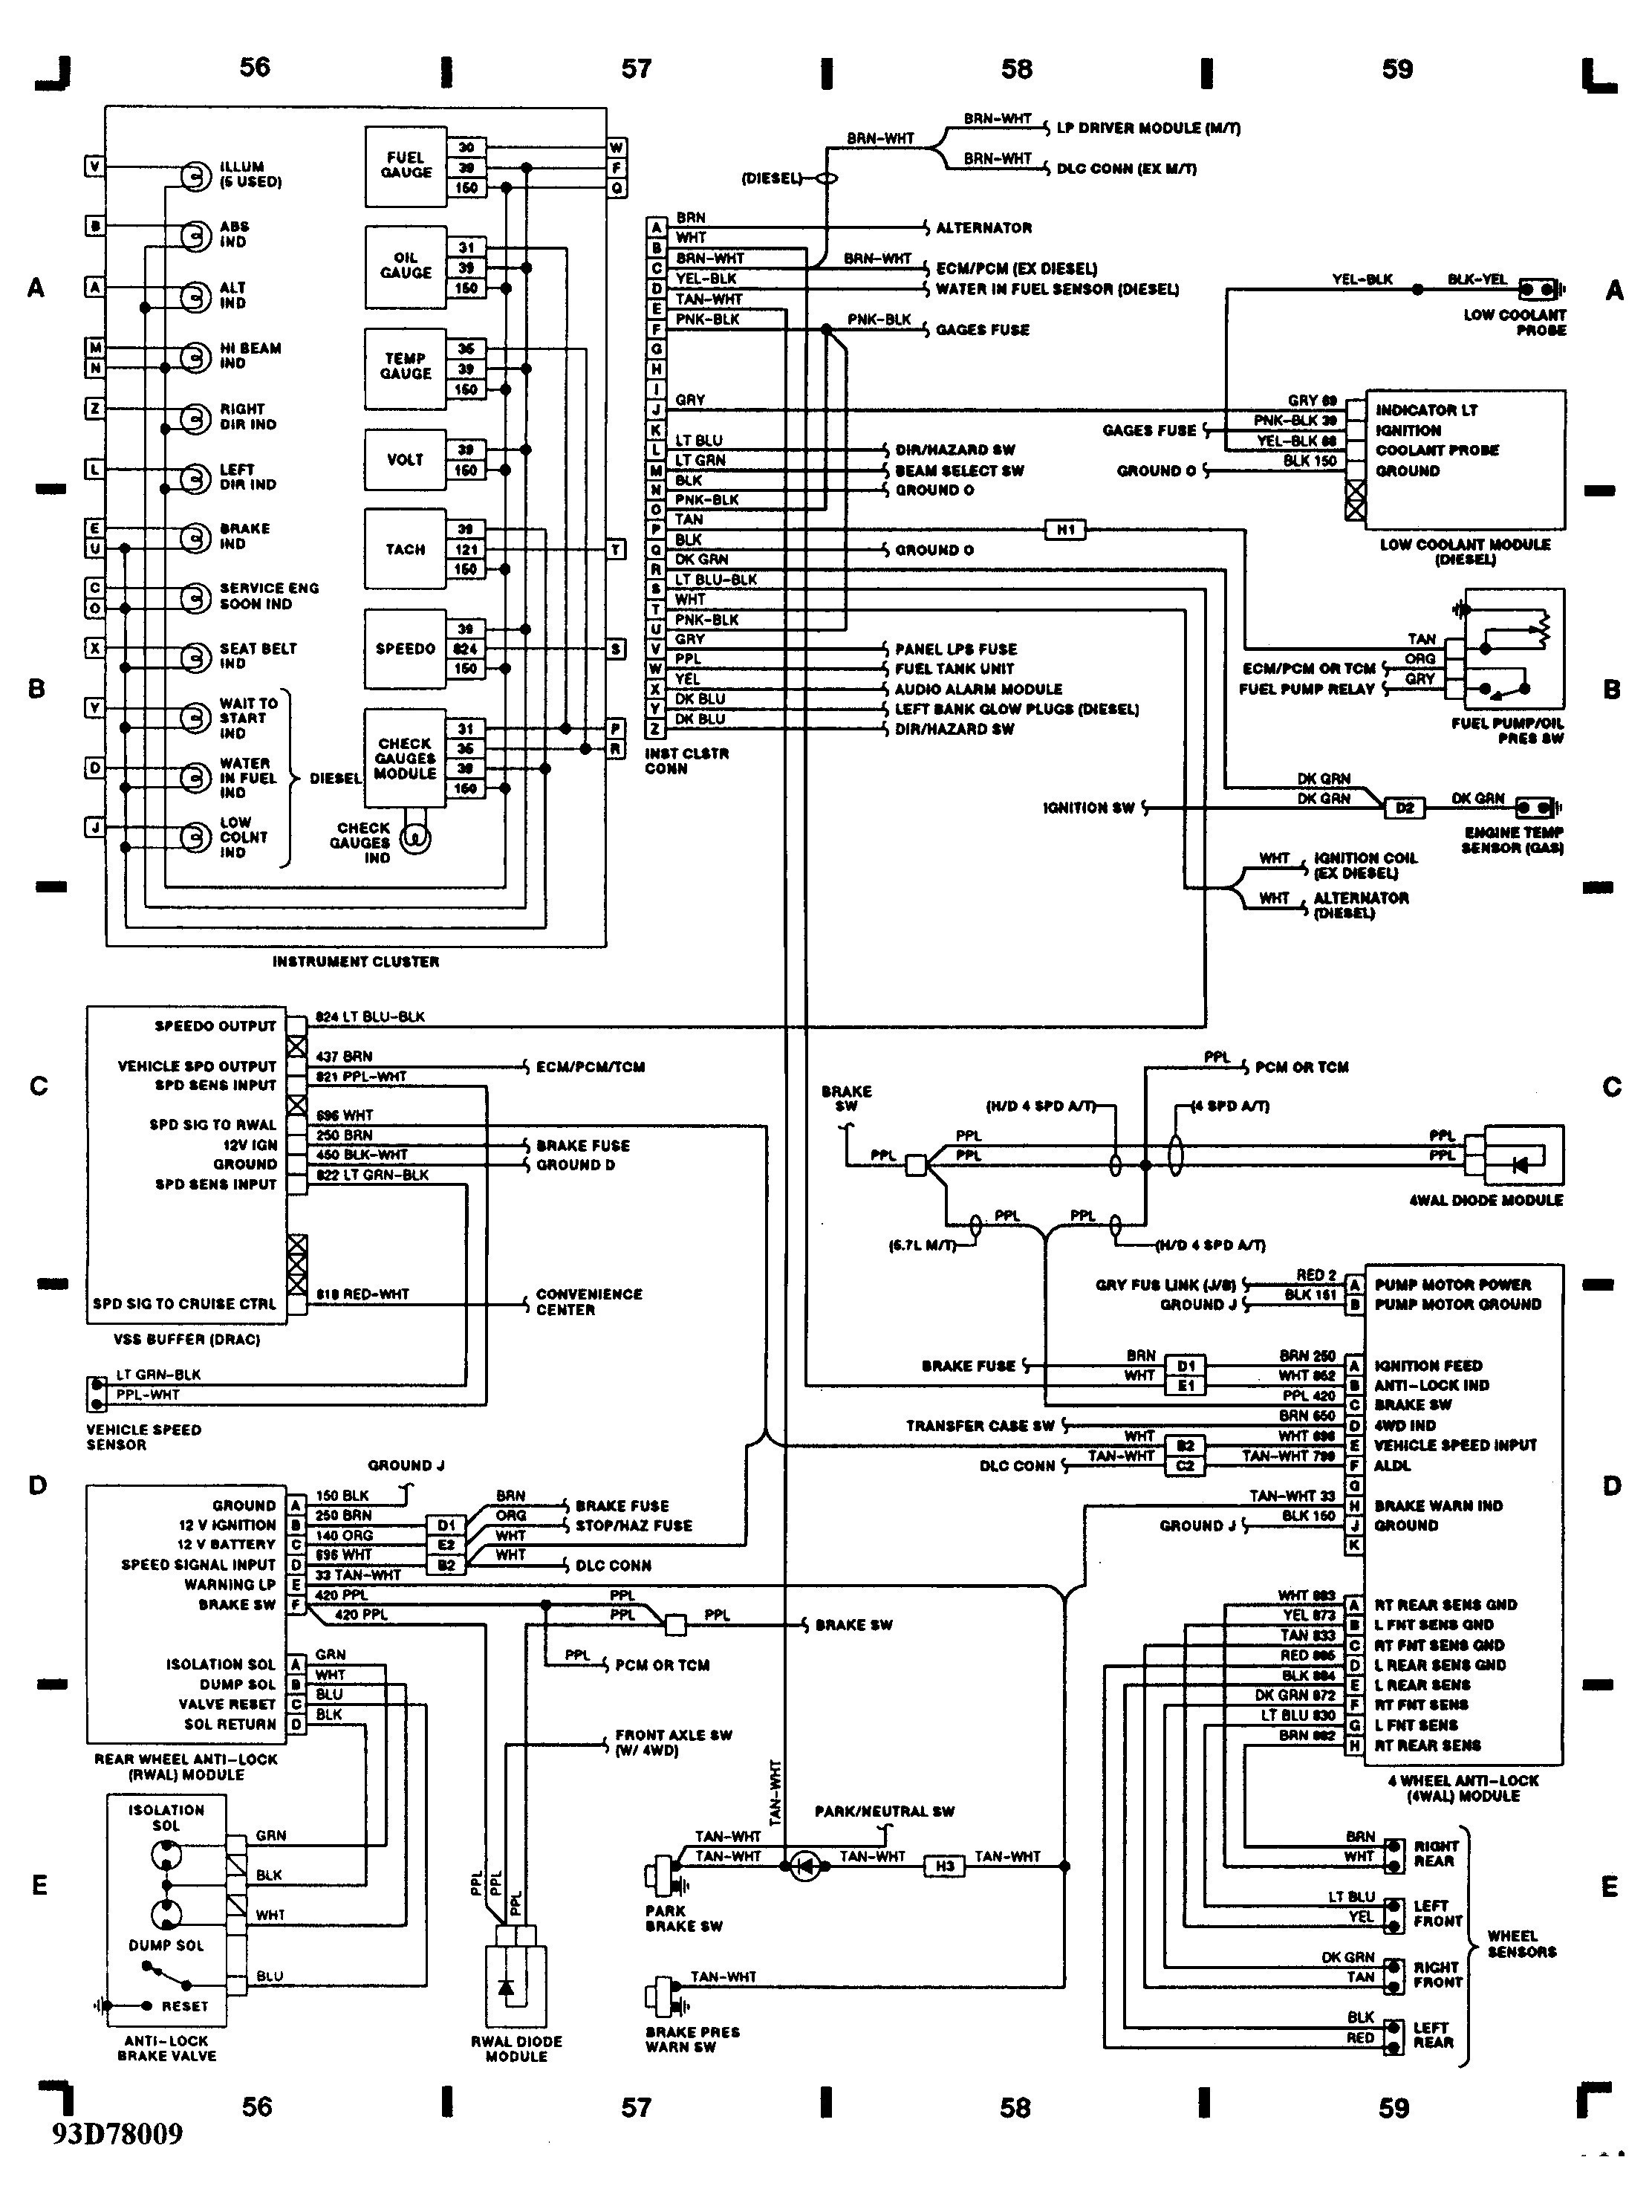 Ford Windstar Engine Diagram ford 3 8 Engine Diagram Of Ford Windstar Engine  Diagram 2003 ford